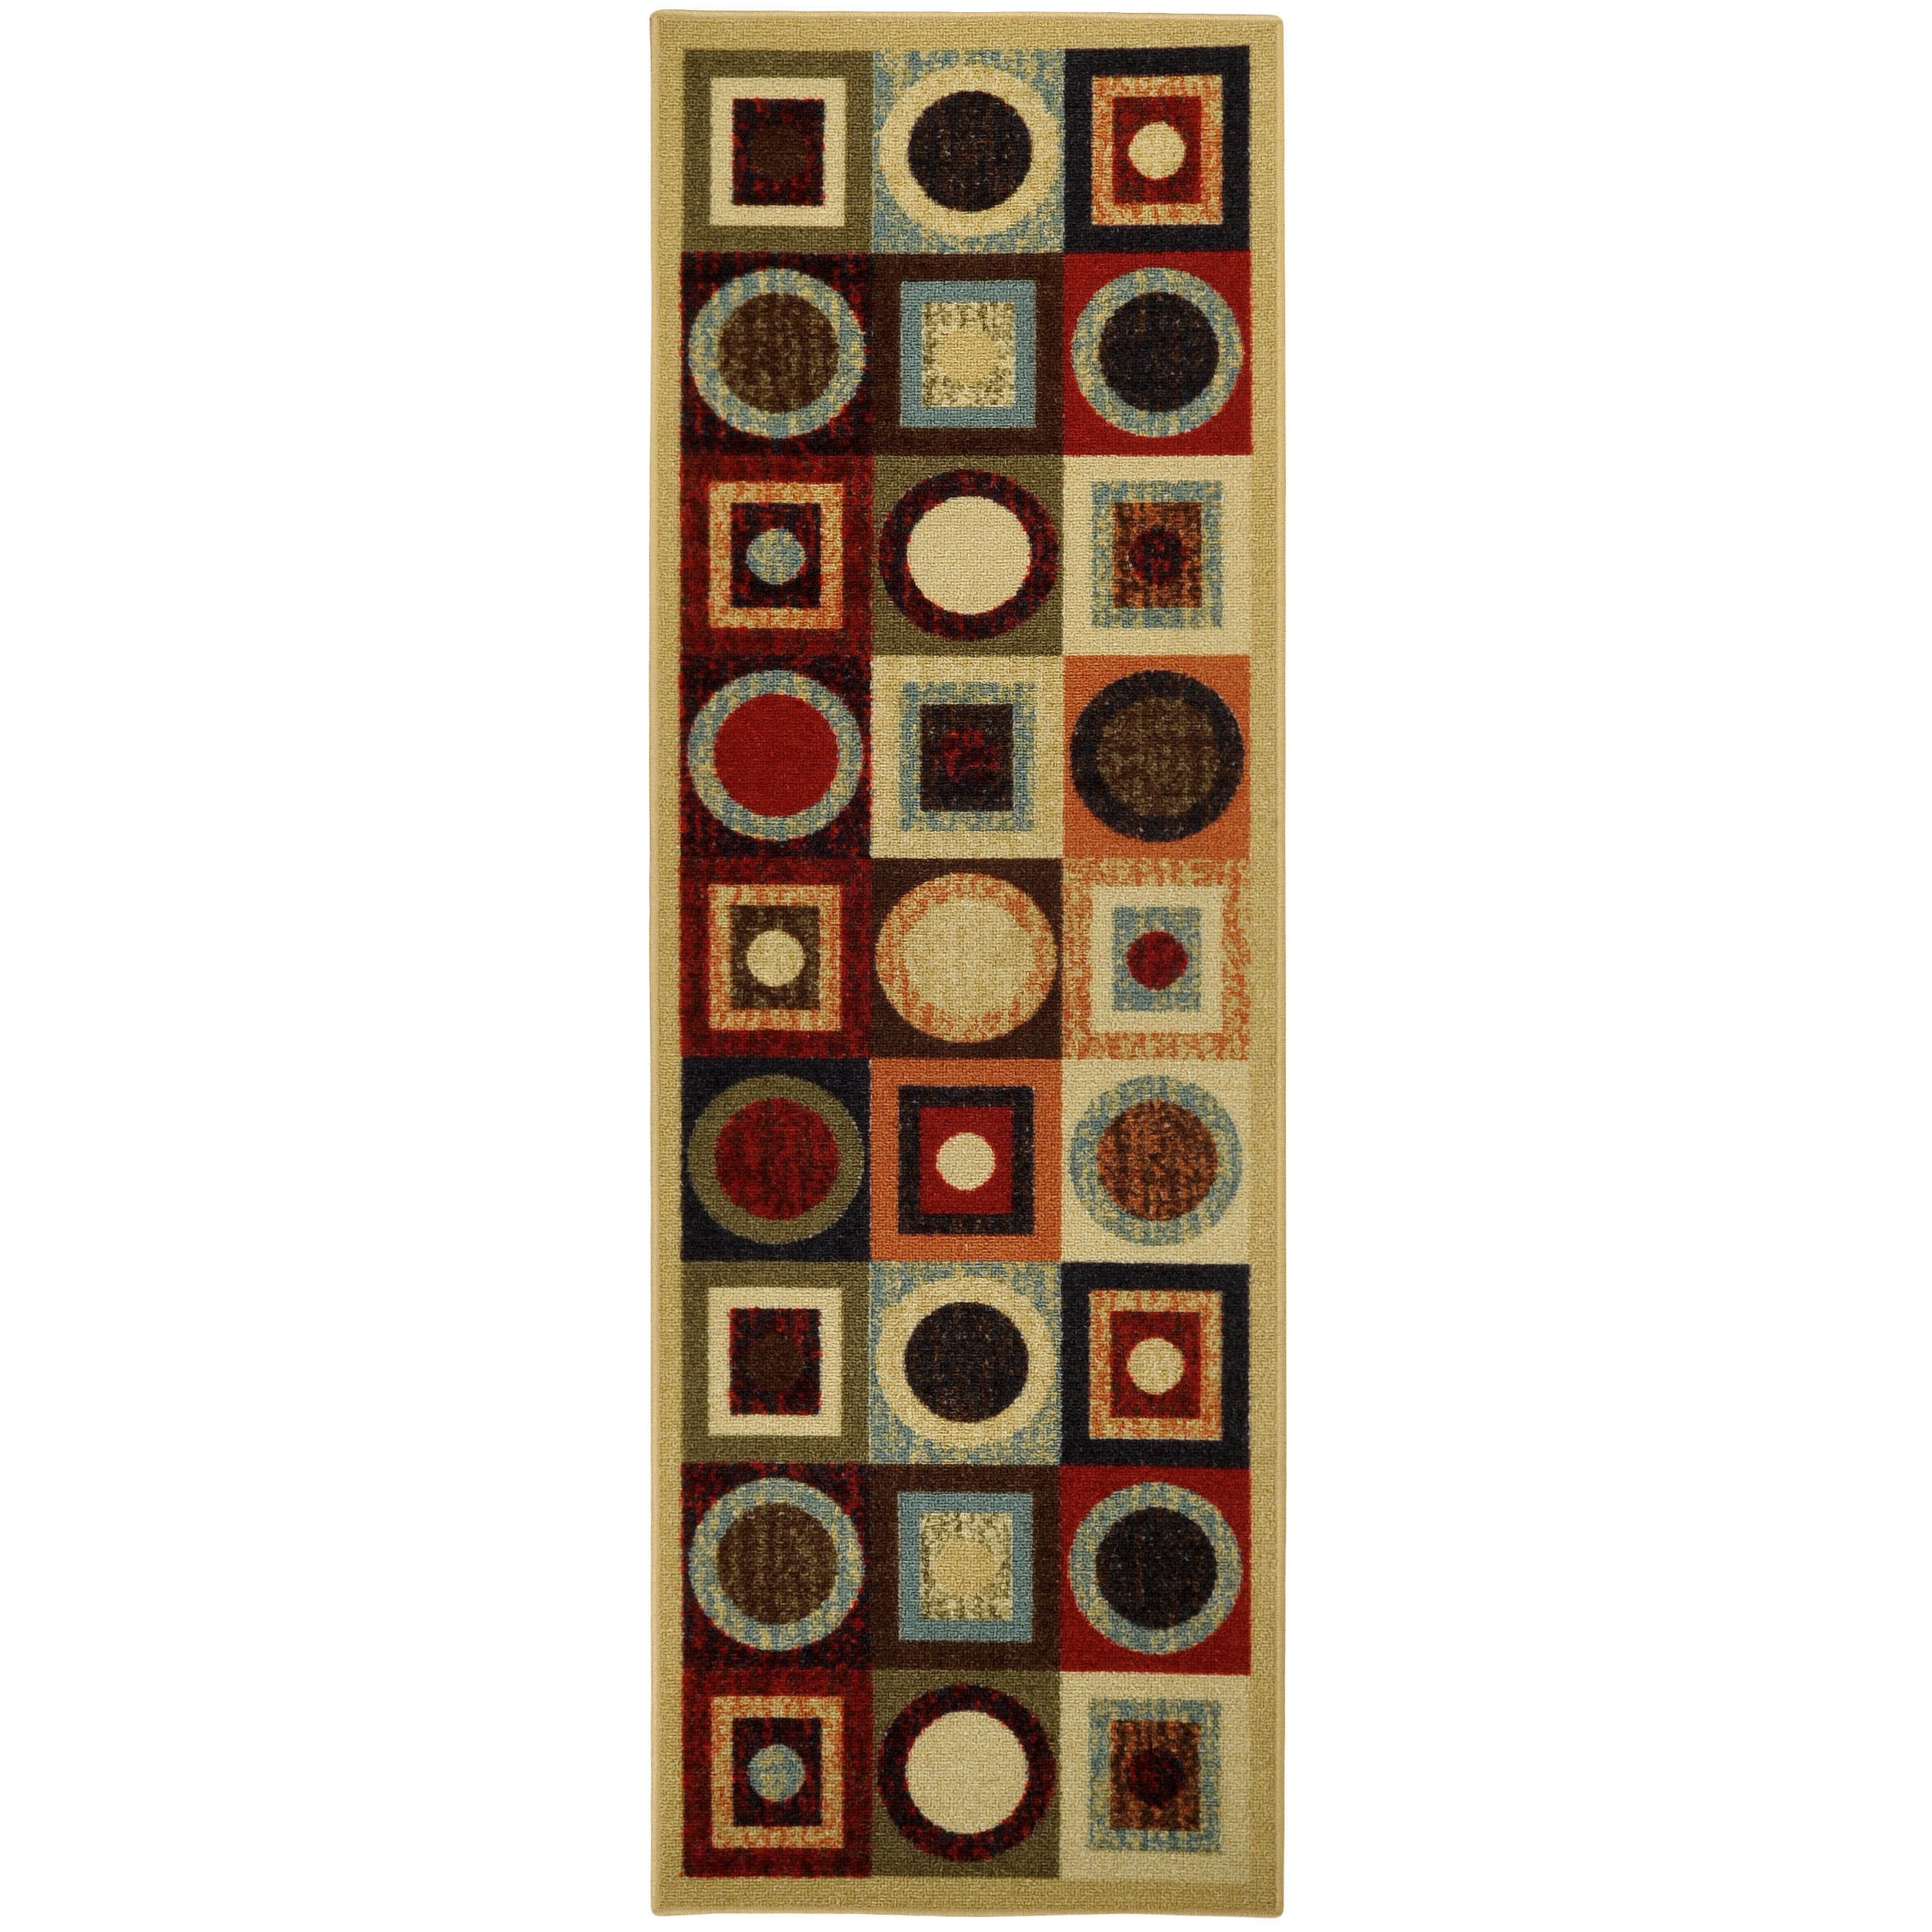 "Rubber Back Multicolor Geometric Non-Skid Runner Rug (22"" x 6'9) at Sears.com"